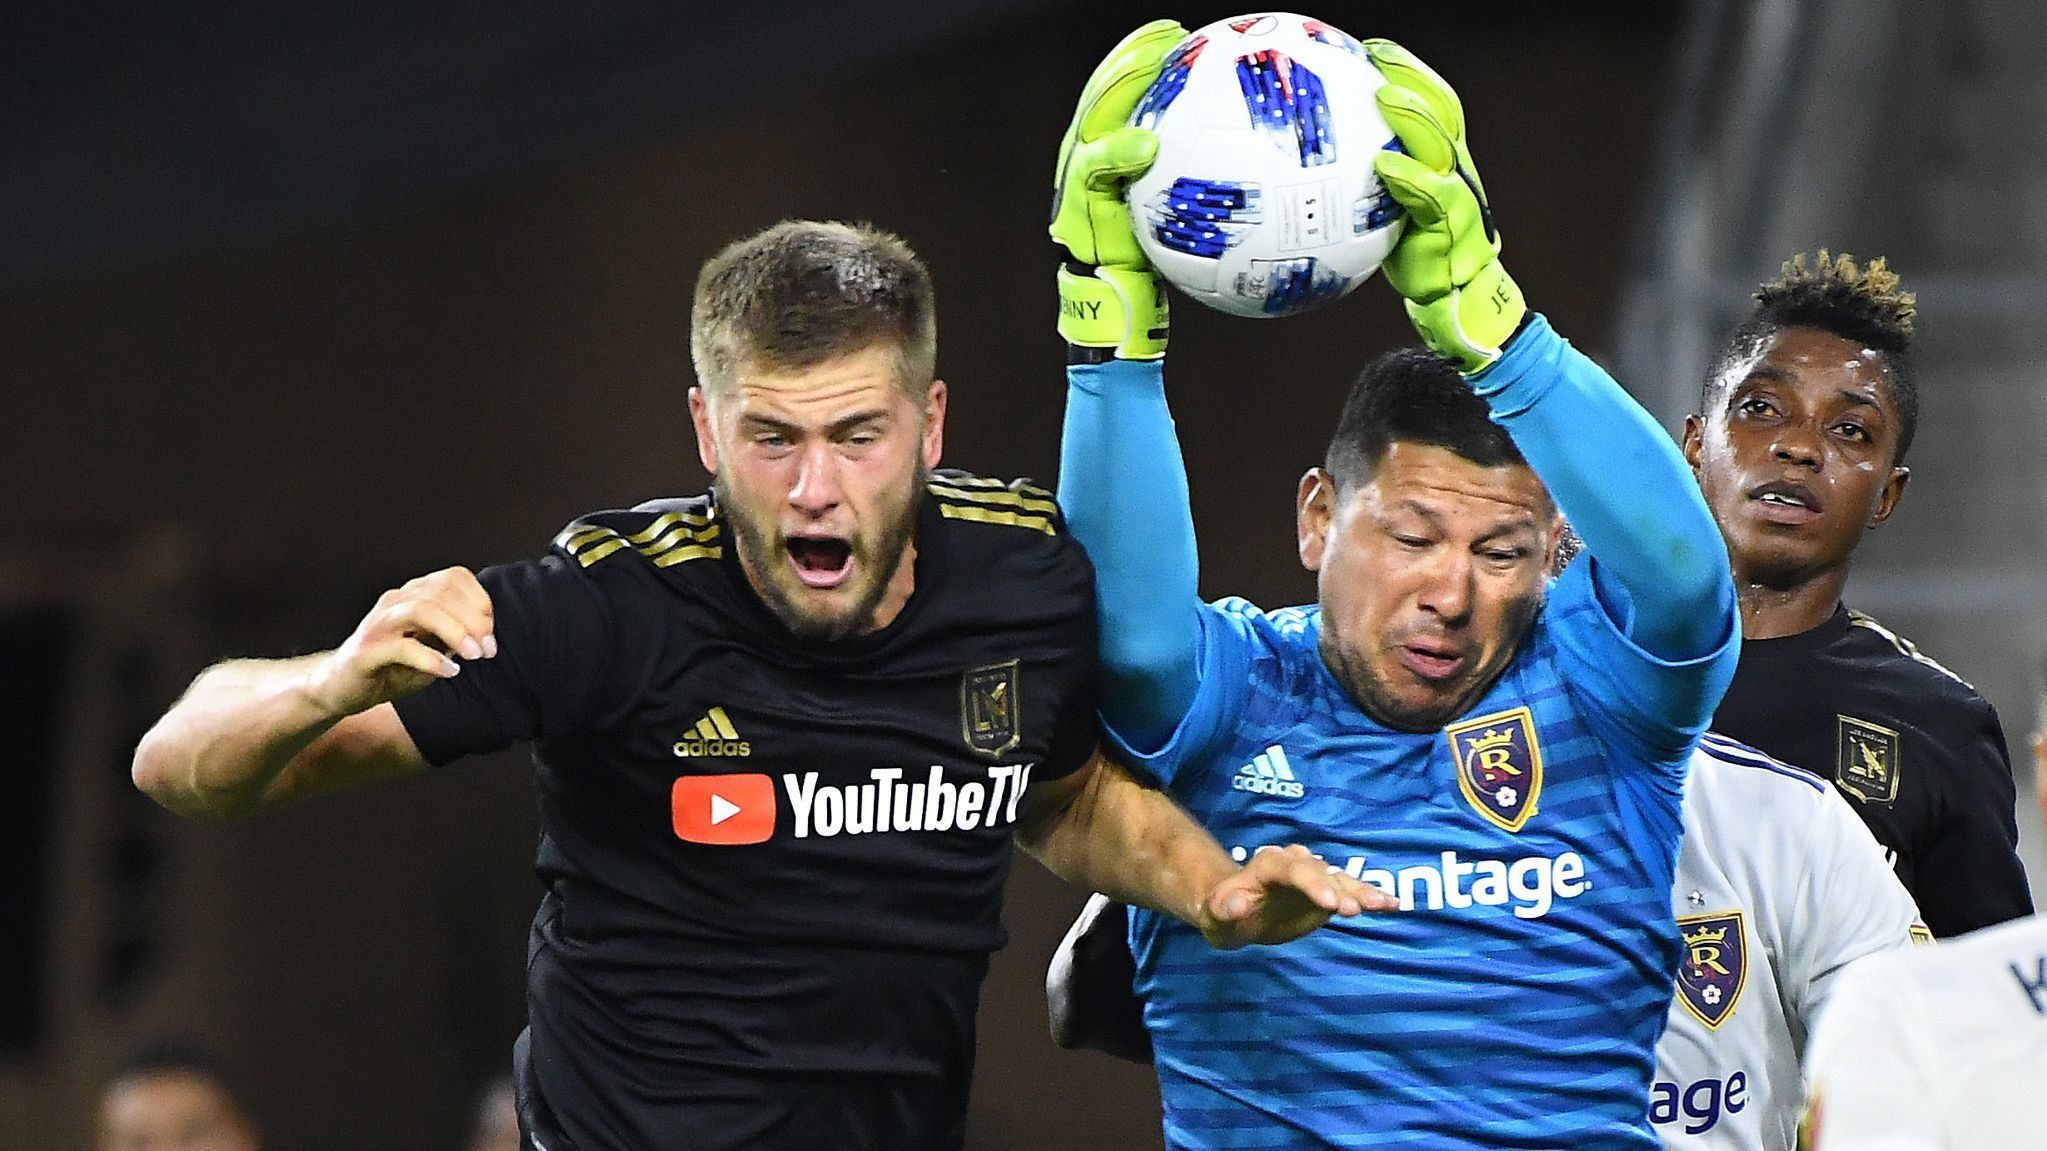 LAFC gets its long-awaited rematch with Real Salt Lake, with a few twists